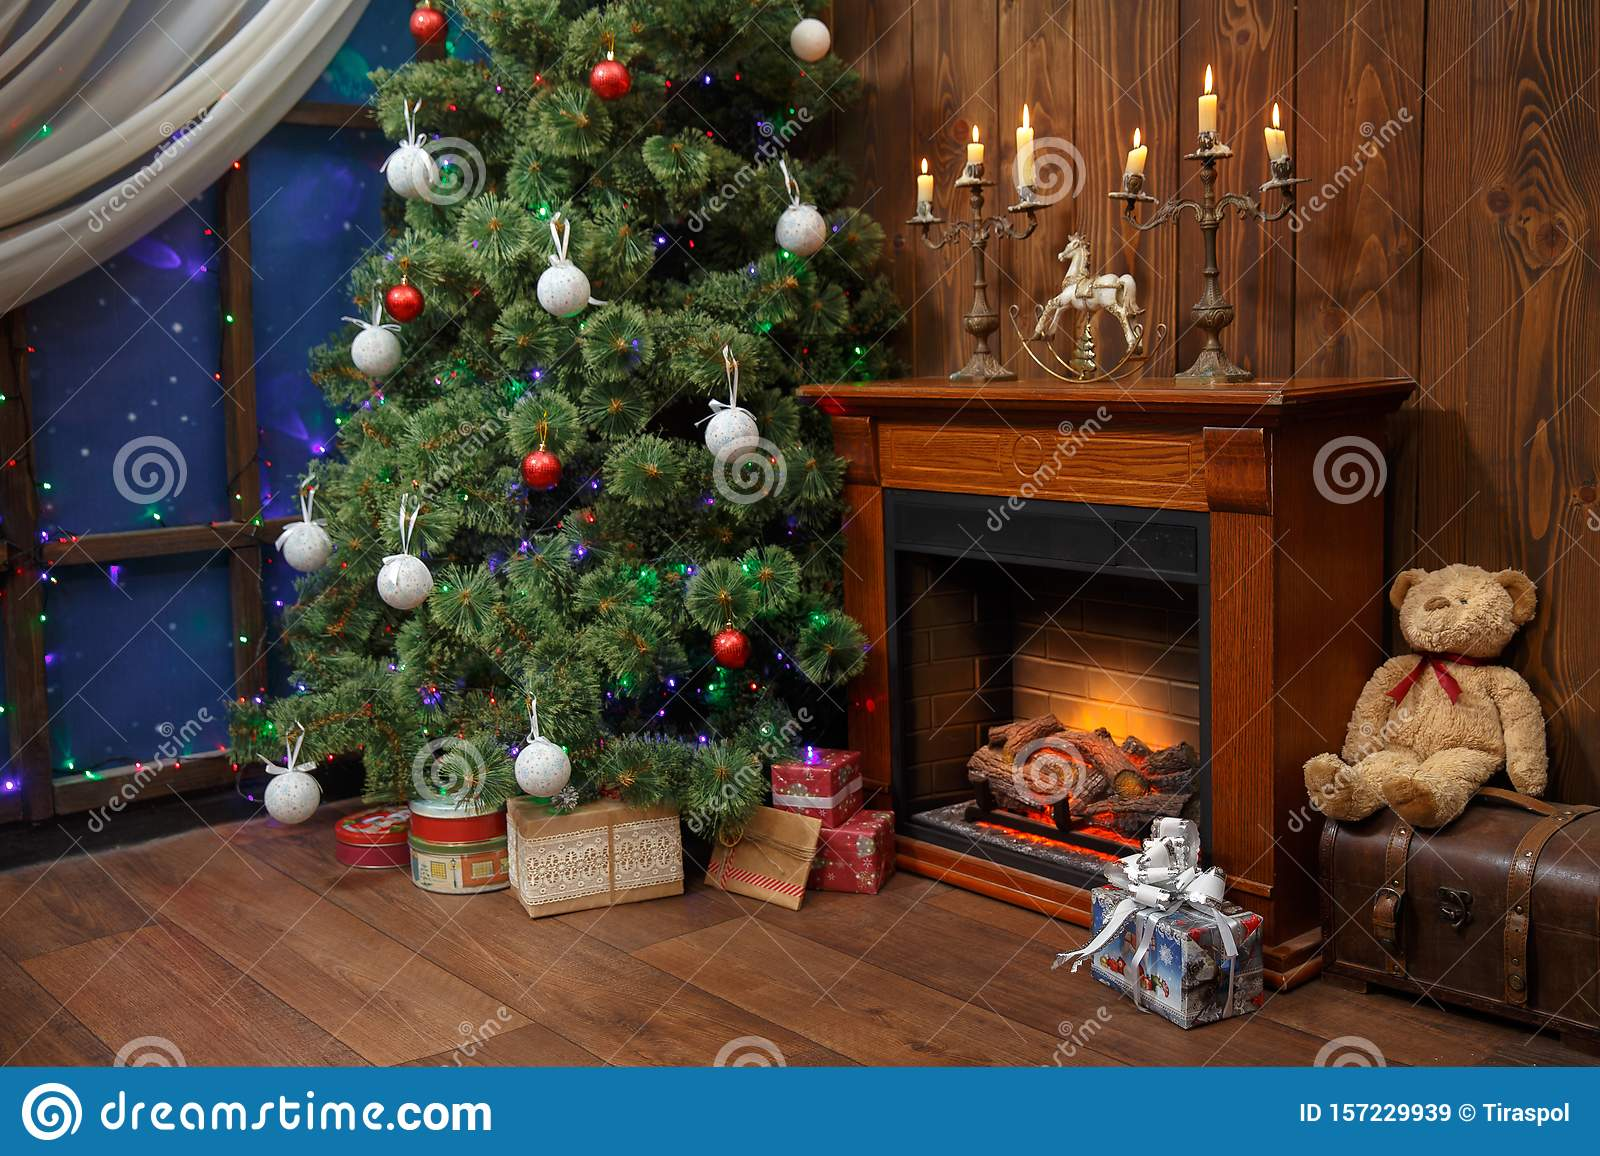 Christmas Interior With Toys And Lots Of Candles Wooden Fake Fireplace Christmas Tree Boxes In Studio Stock Image Image Of Plaid Decoration 157229939